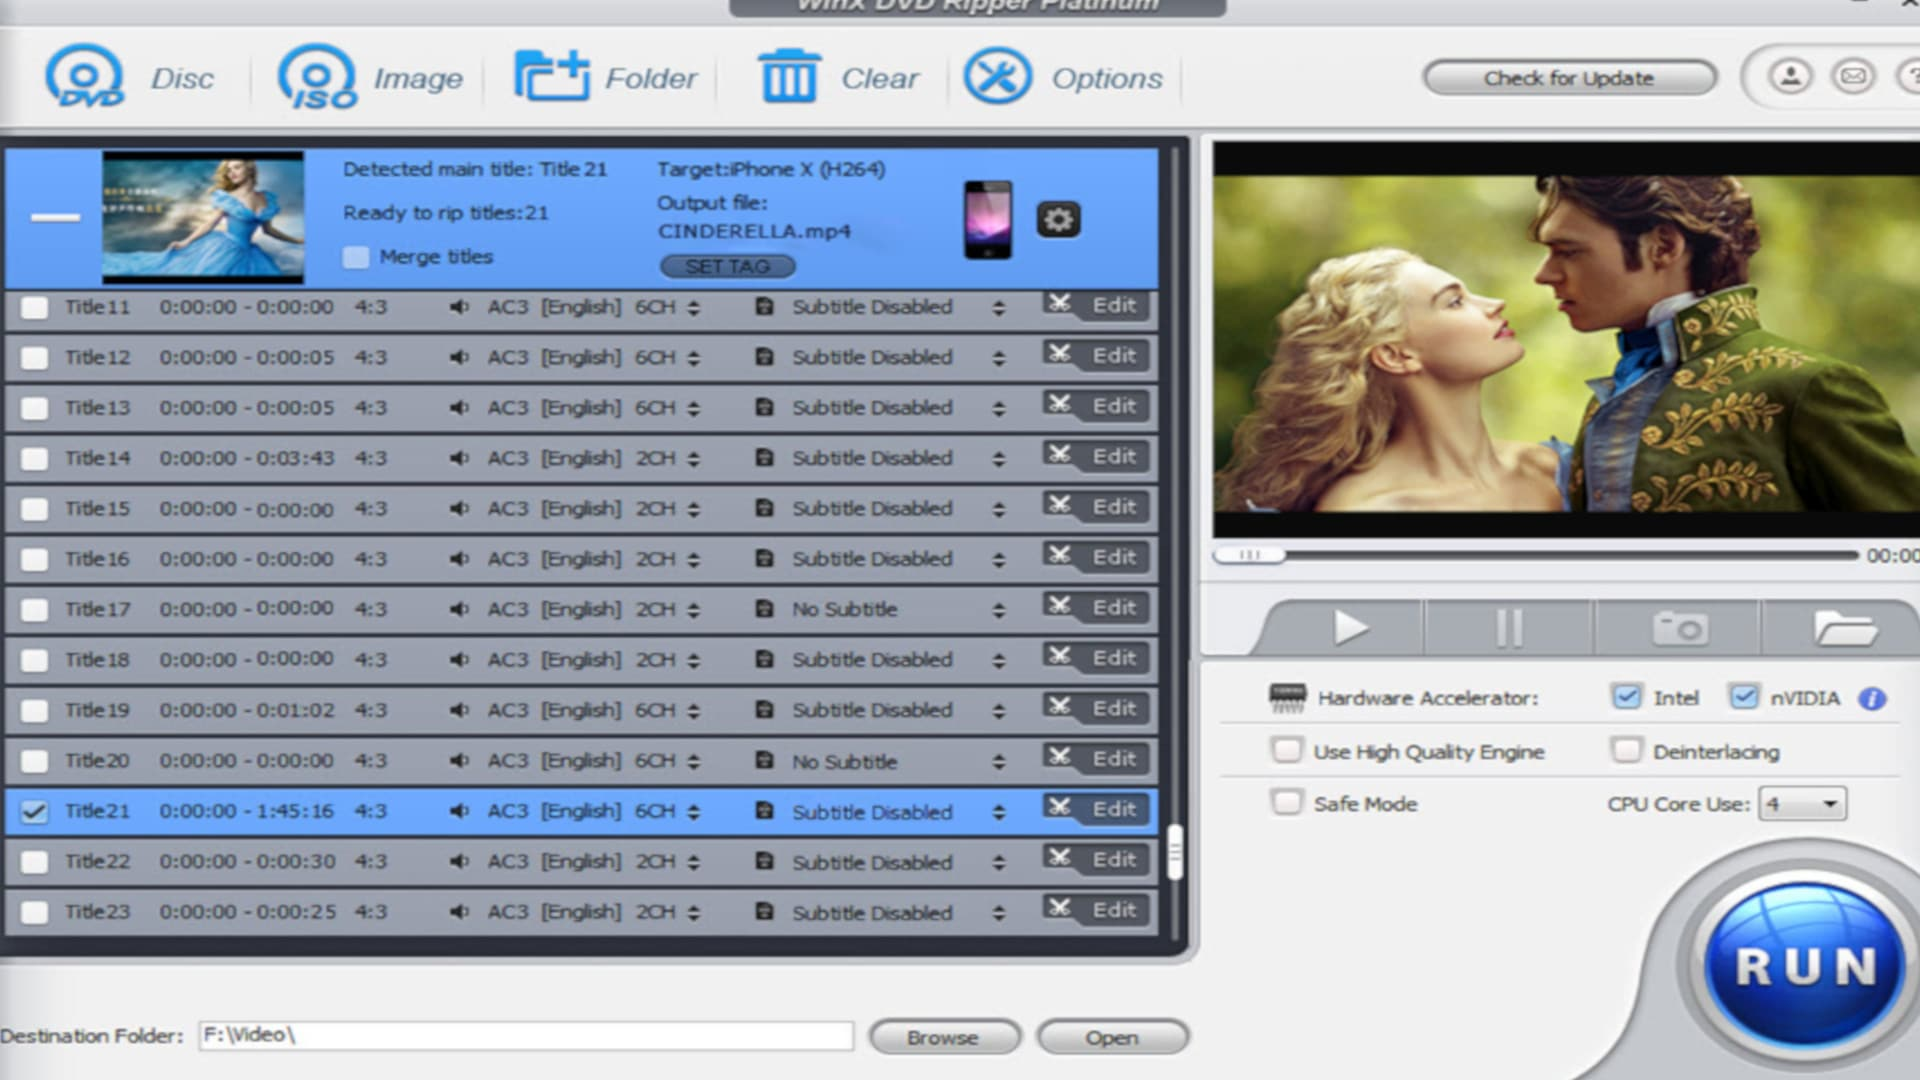 WinX DVD Ripper Platinum » FREE DOWNLOAD | CRACKED-GAMES ORG